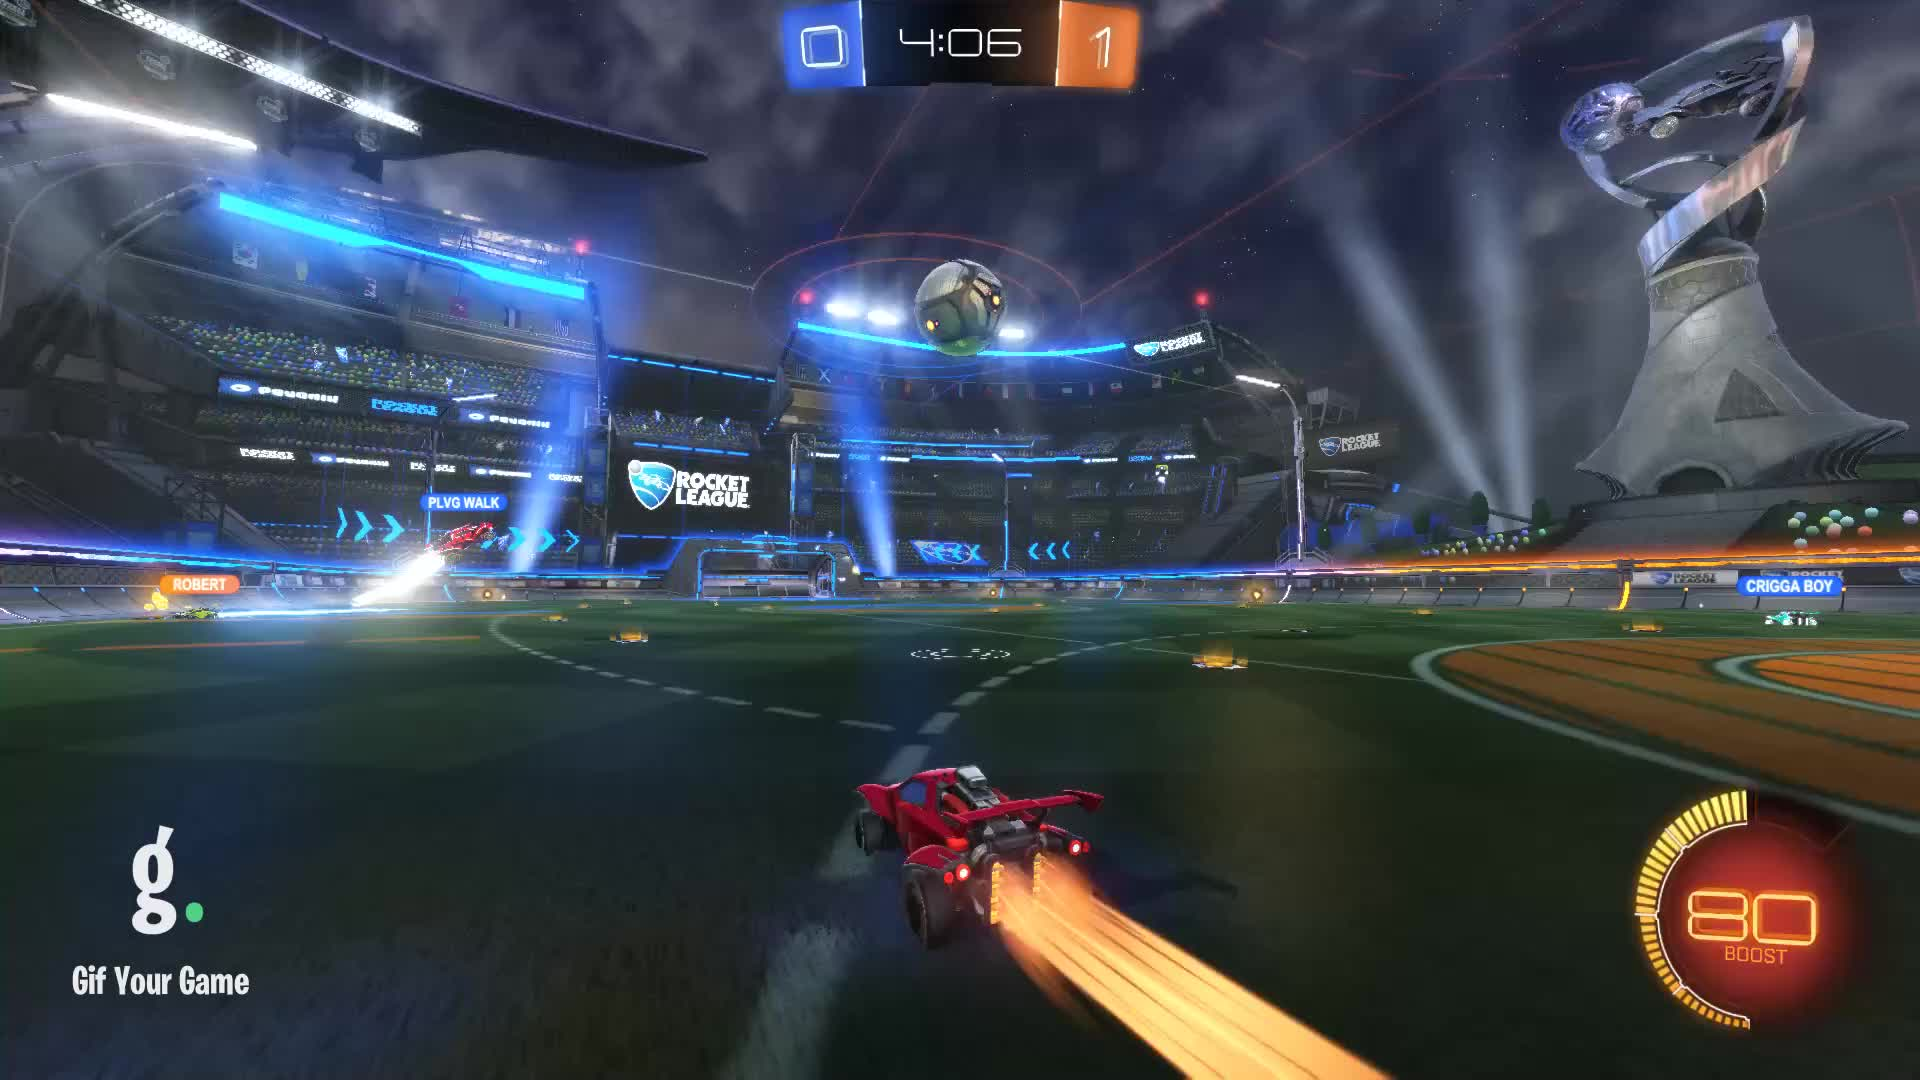 Gif Your Game, GifYourGame, Goal, Rocket League, RocketLeague, SwiftTime0, Goal 2: SwiftTime0 GIFs